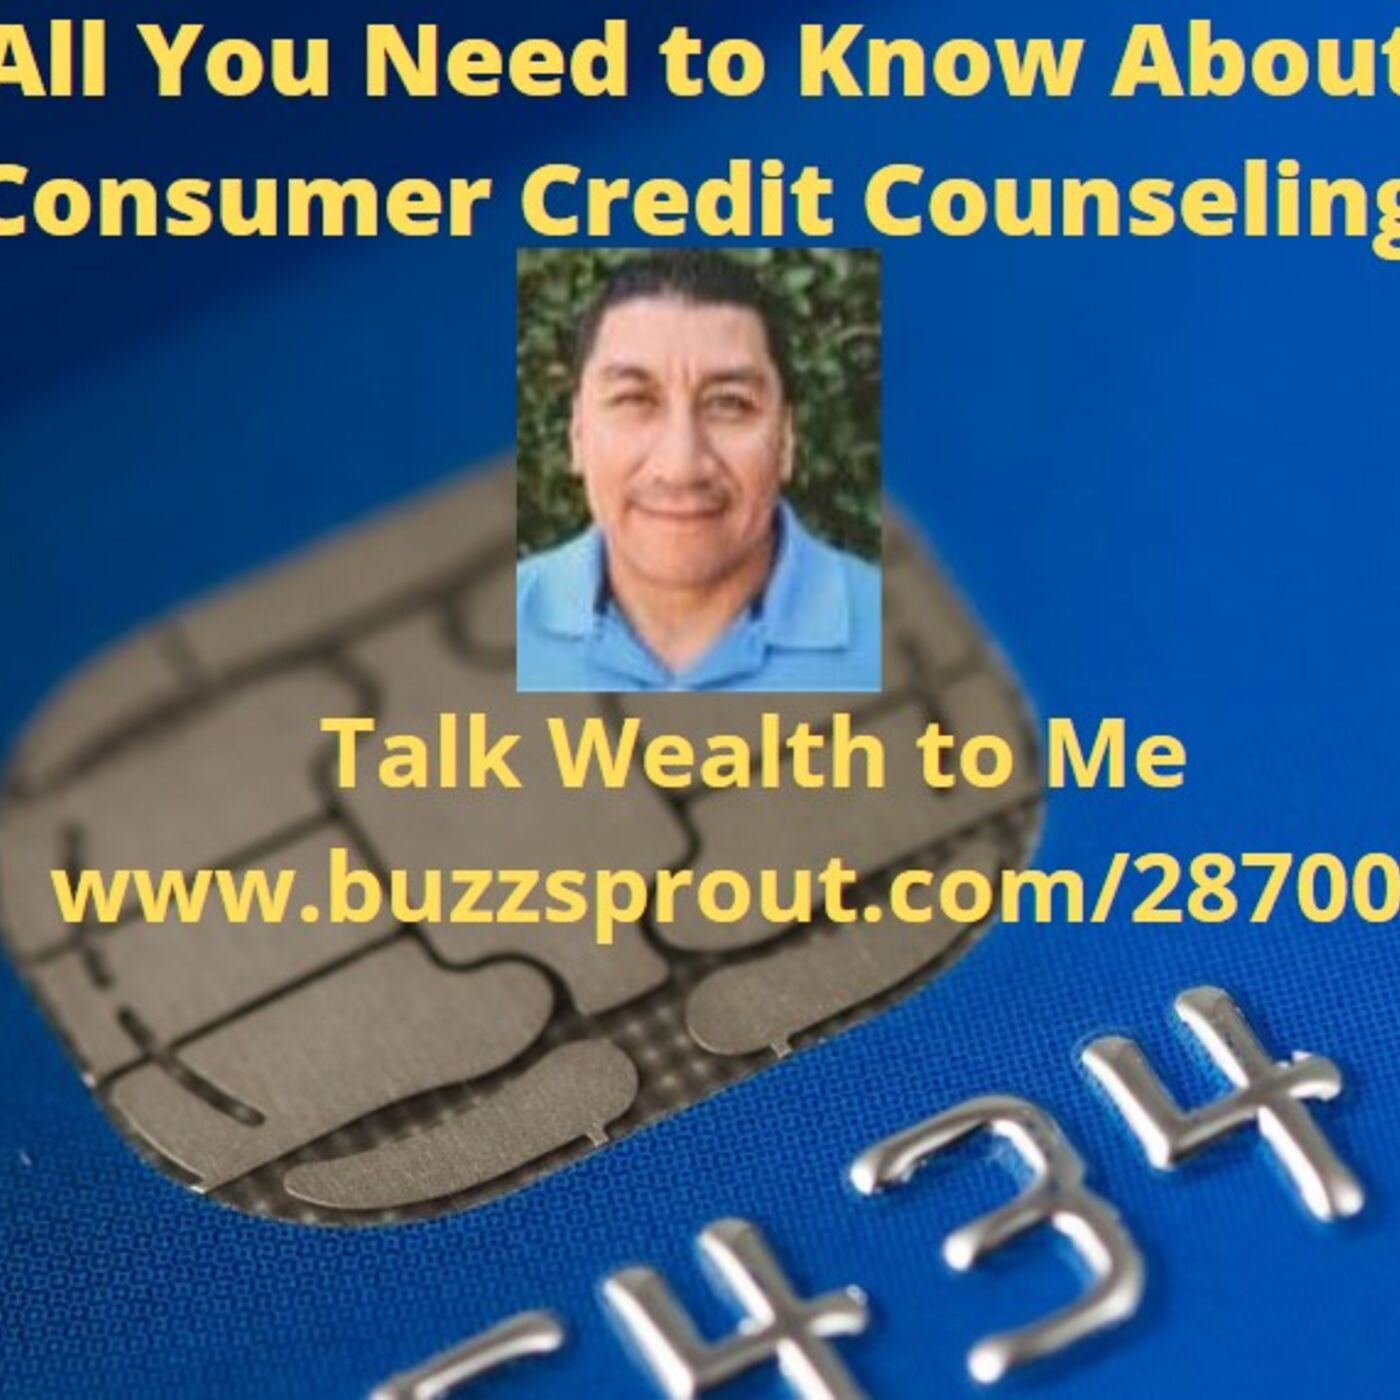 #064 All You Need to Know About Consumer Credit Counseling